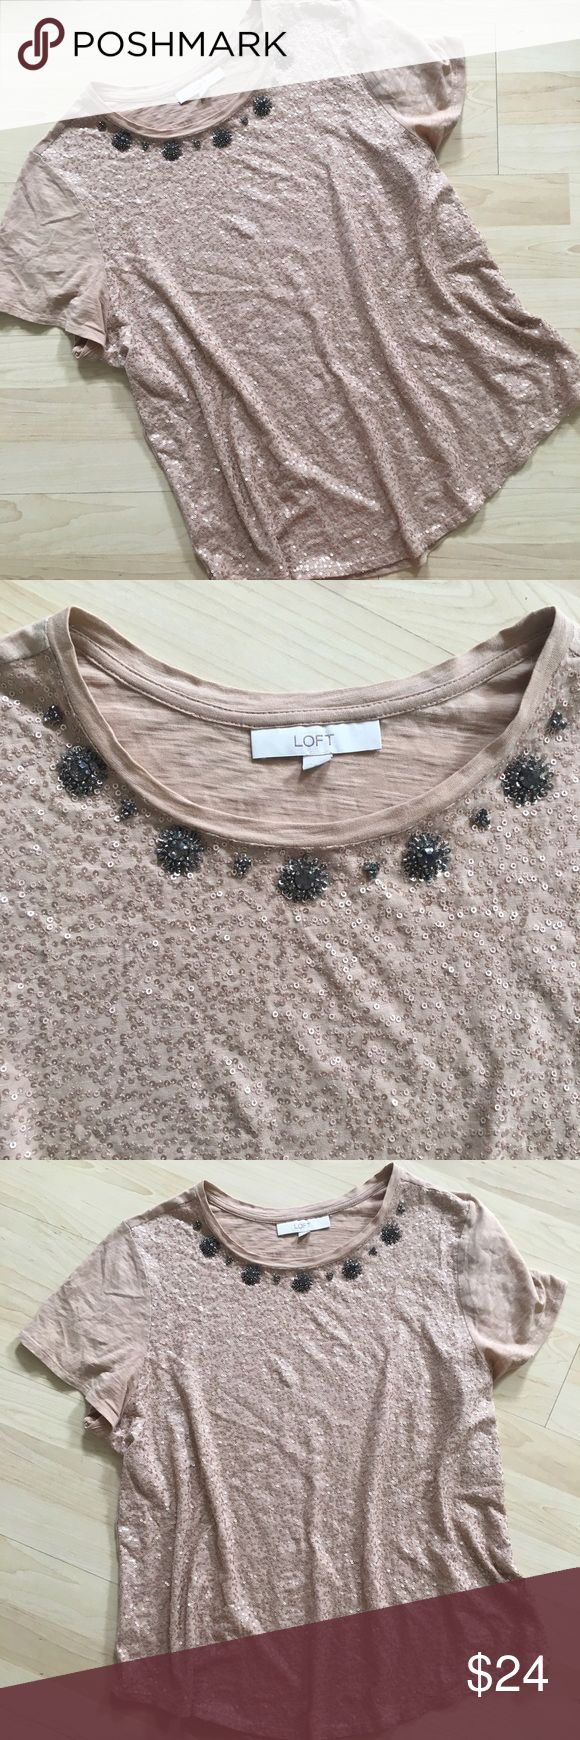 Loft champagne gold sequin embellished tee shirt Gorgeous light gold tee shirt covered with sequins on the front and embellished around the neckline. In like new condition. Fun to dress up or down! LOFT Tops Blouses